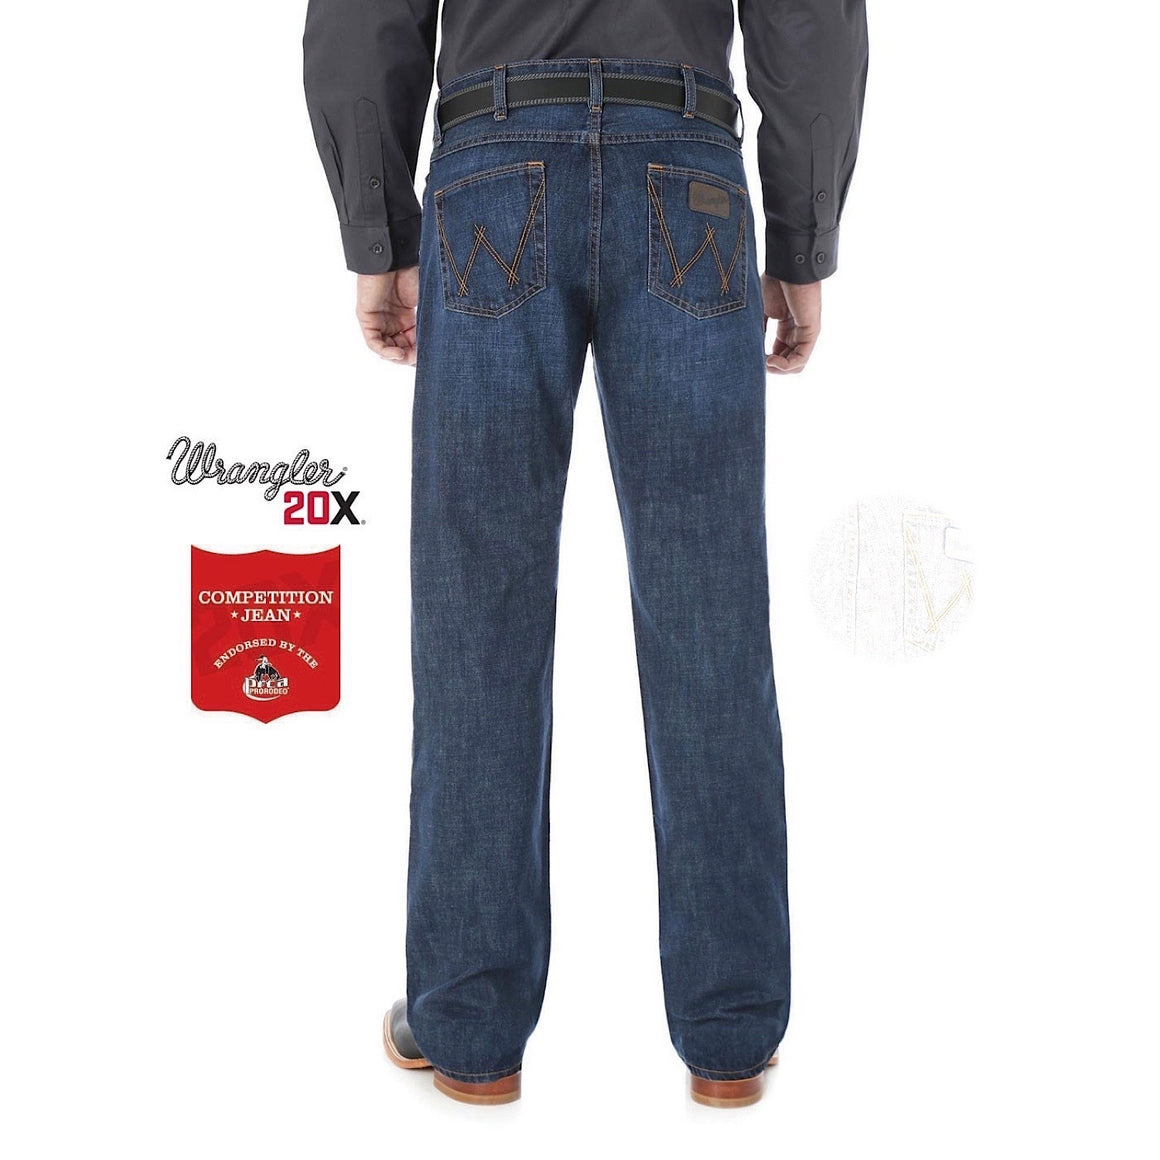 Wrangler Mens 20X Competition Slim Fit Jean Dillon 02MWXDL